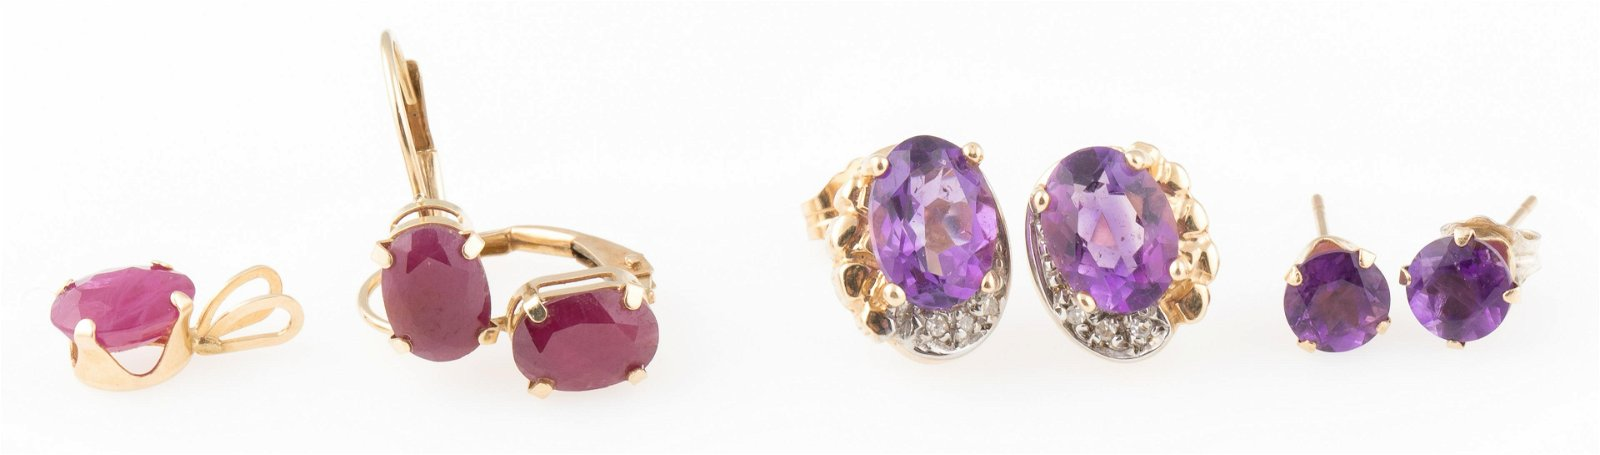 14K GOLD EARRINGS WITH RUBY AND AMETHYST